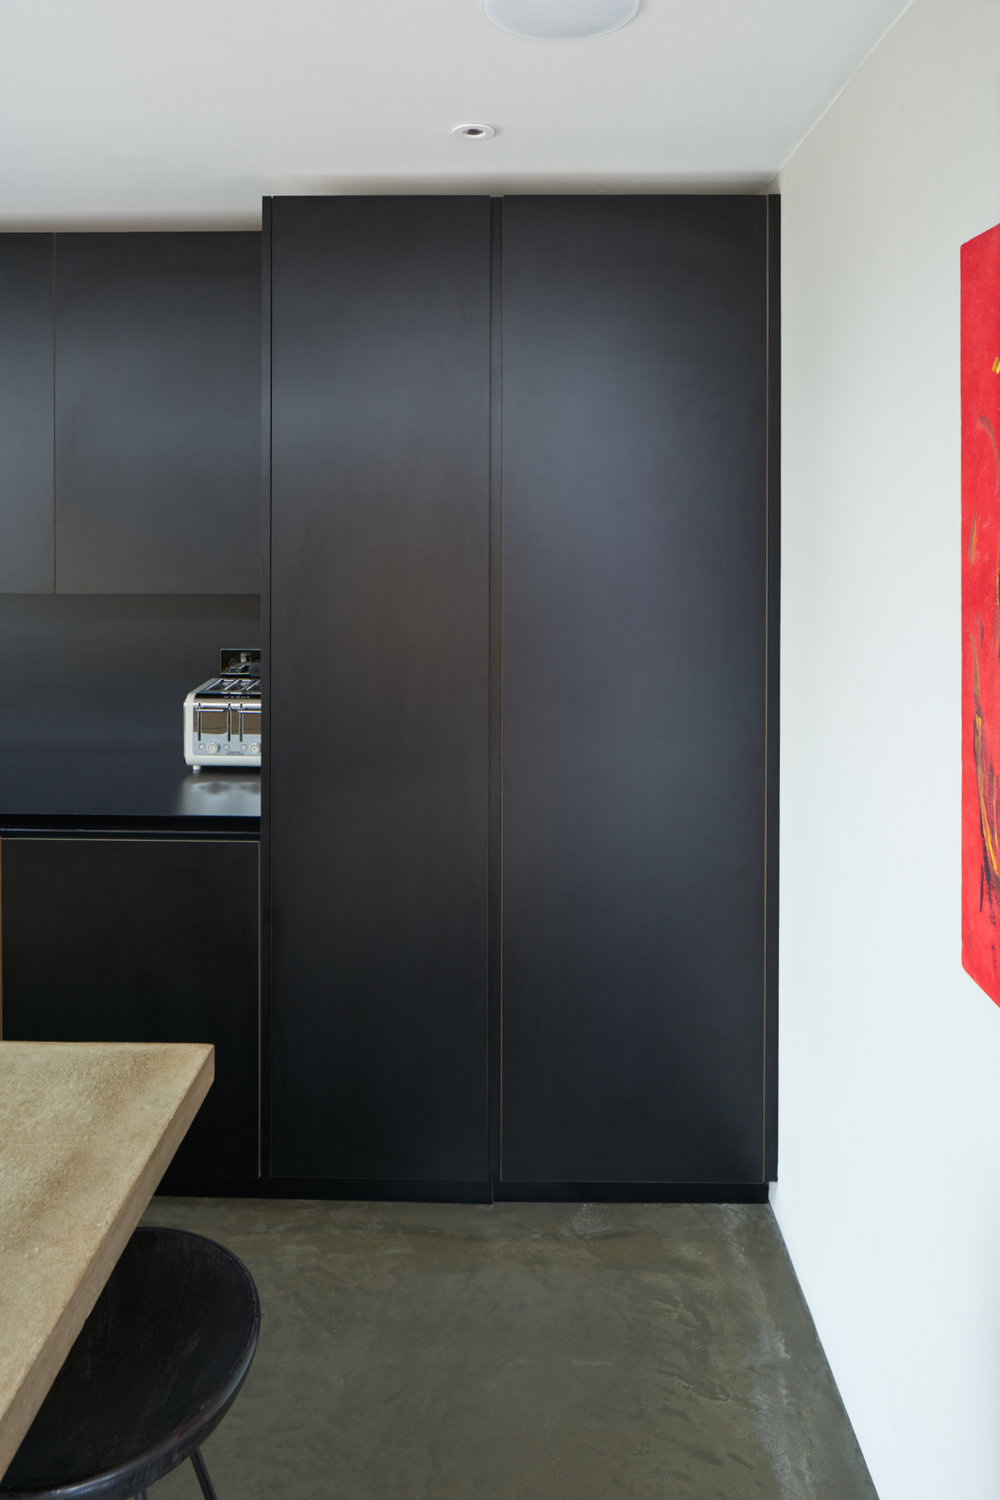 Matt Lacquer Doors With Recessed Handles And Birch Veneer Mfc Backing And Interiors. & Finch Doors Finchley u0026 Visit Us pezcame.com